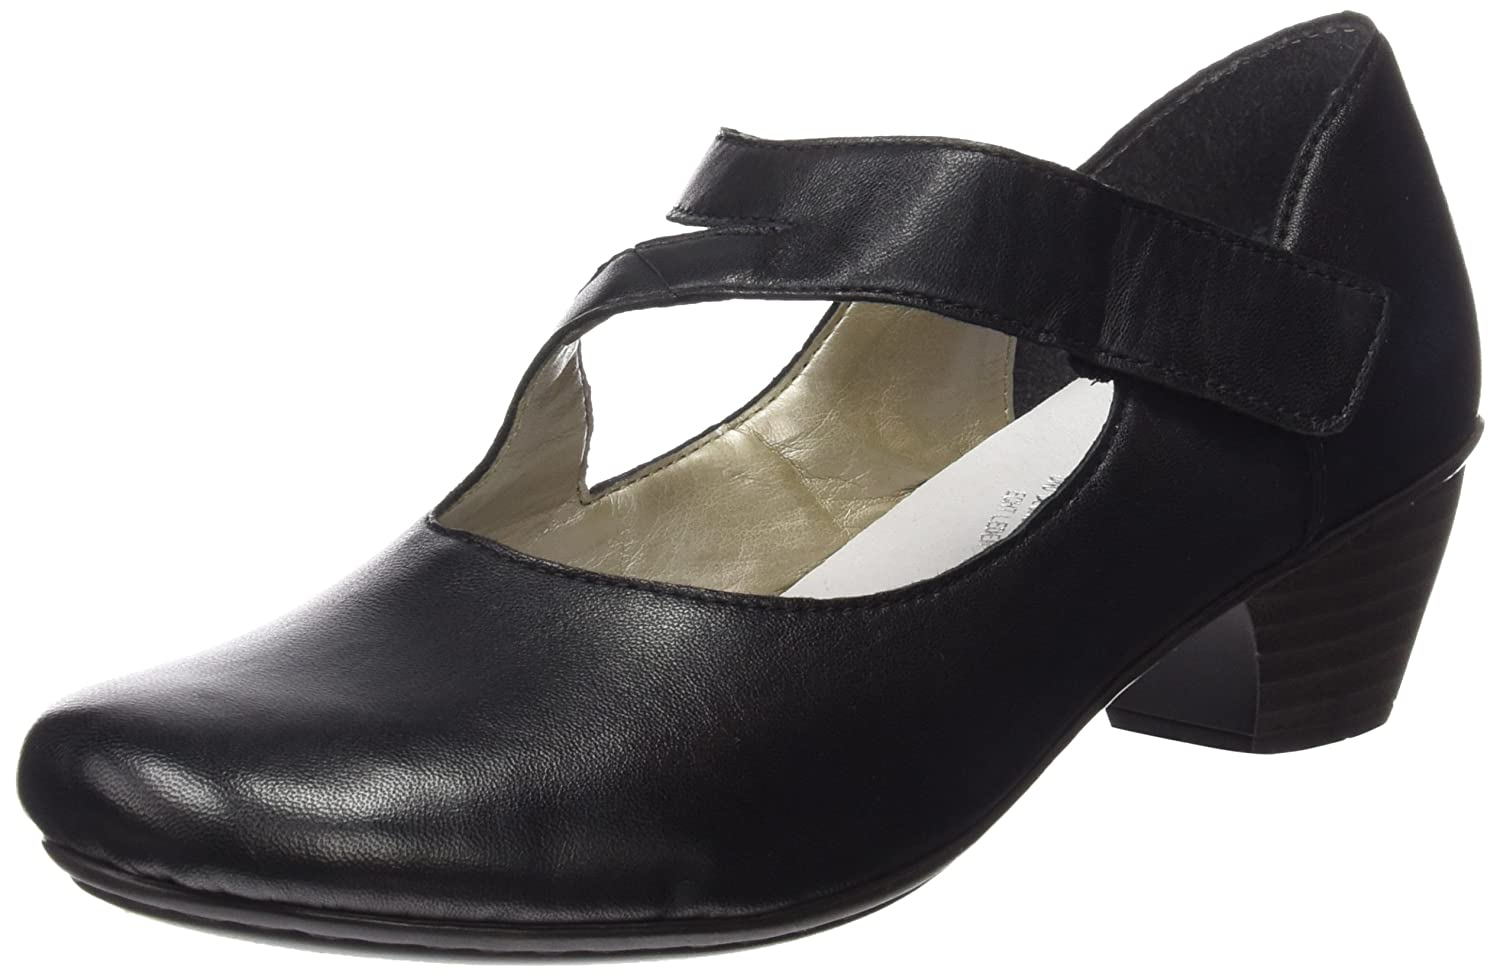 Rieker Women''s 41793 Closed Toe Heels